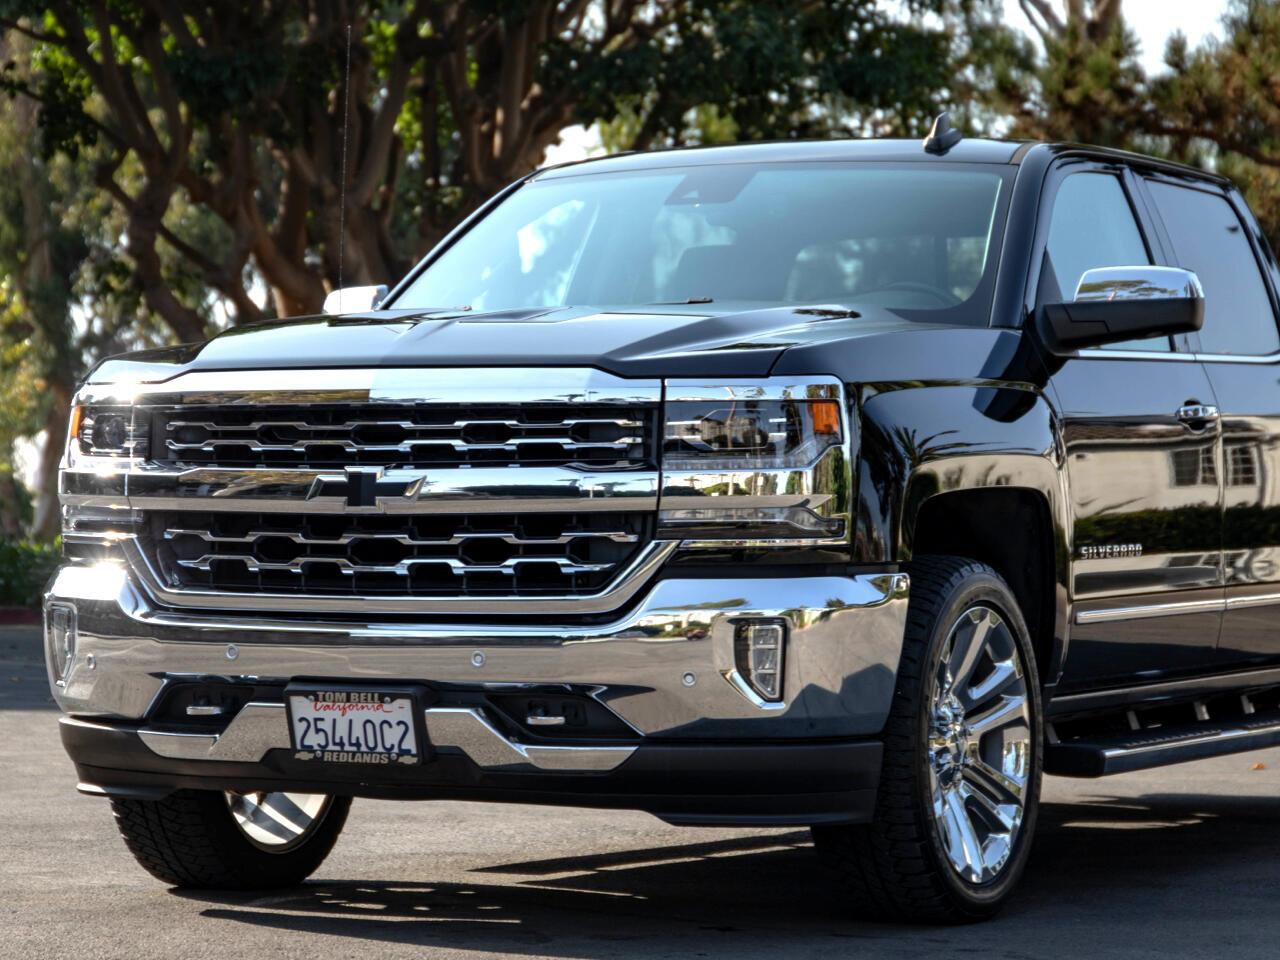 2016 Chevrolet Silverado (CC-1387235) for sale in Marina Del Rey, California